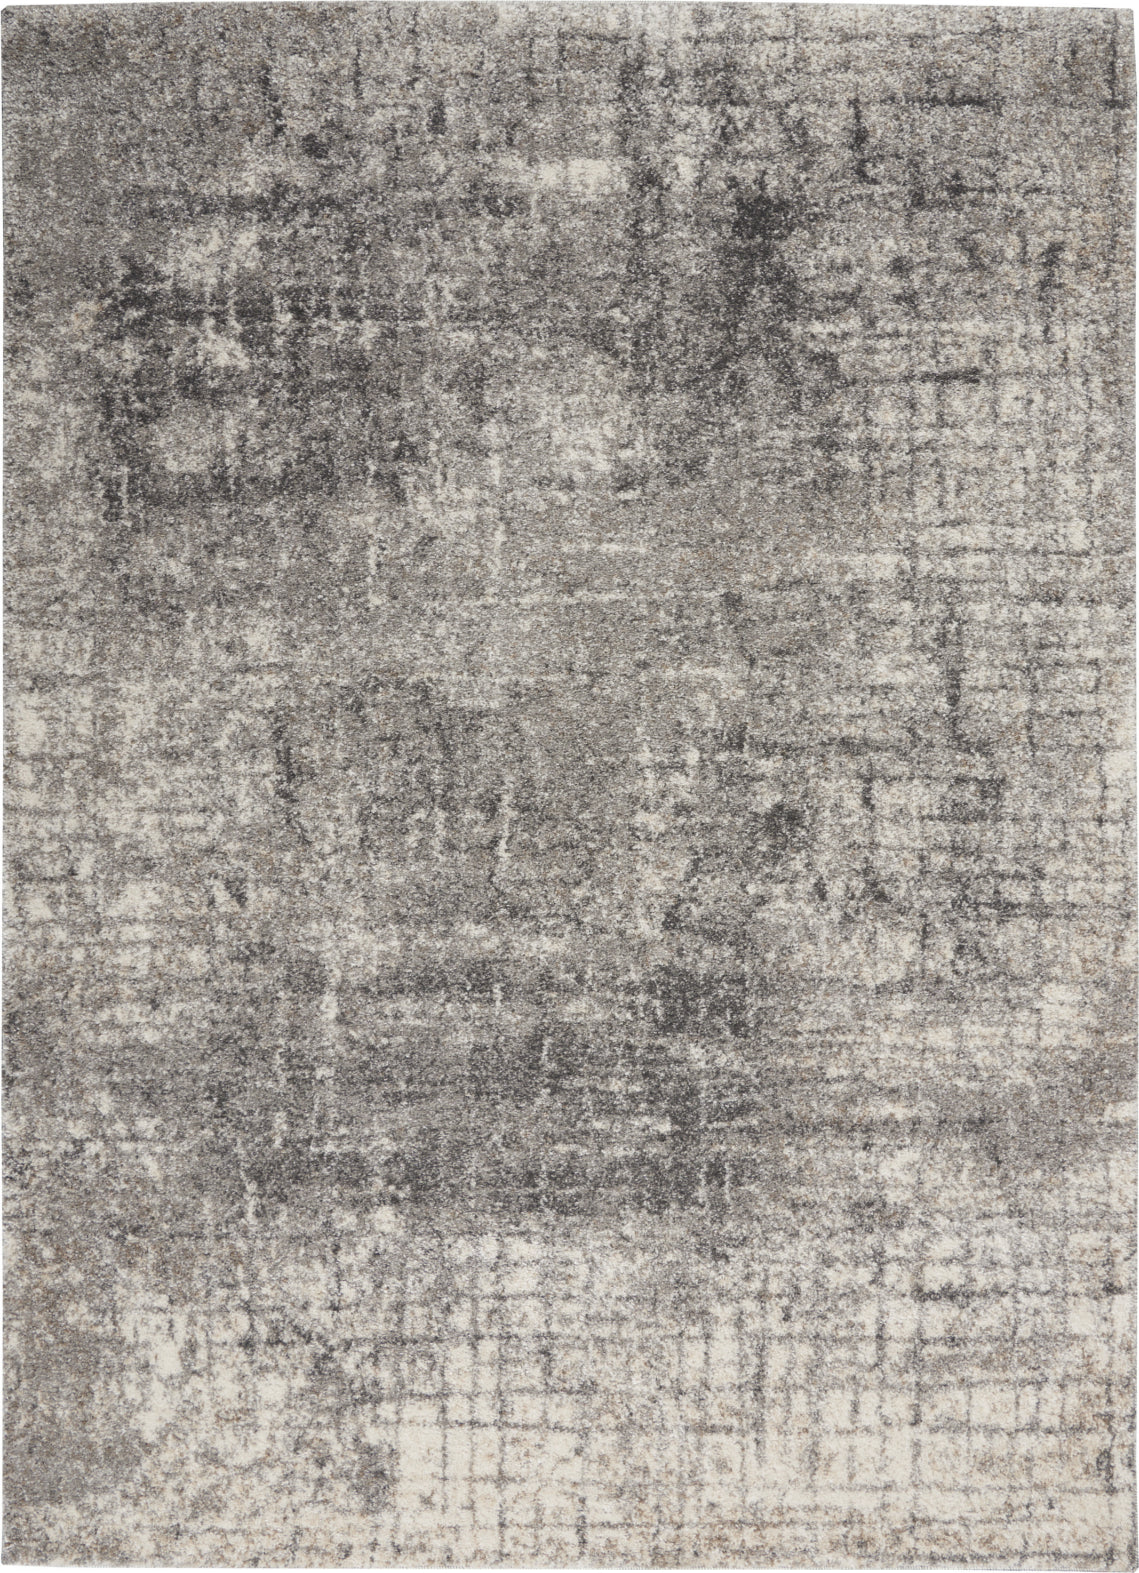 Nourison KI60 Ivory Shore KI63 Cream/Silver Area Rug by Kathy Ireland main image